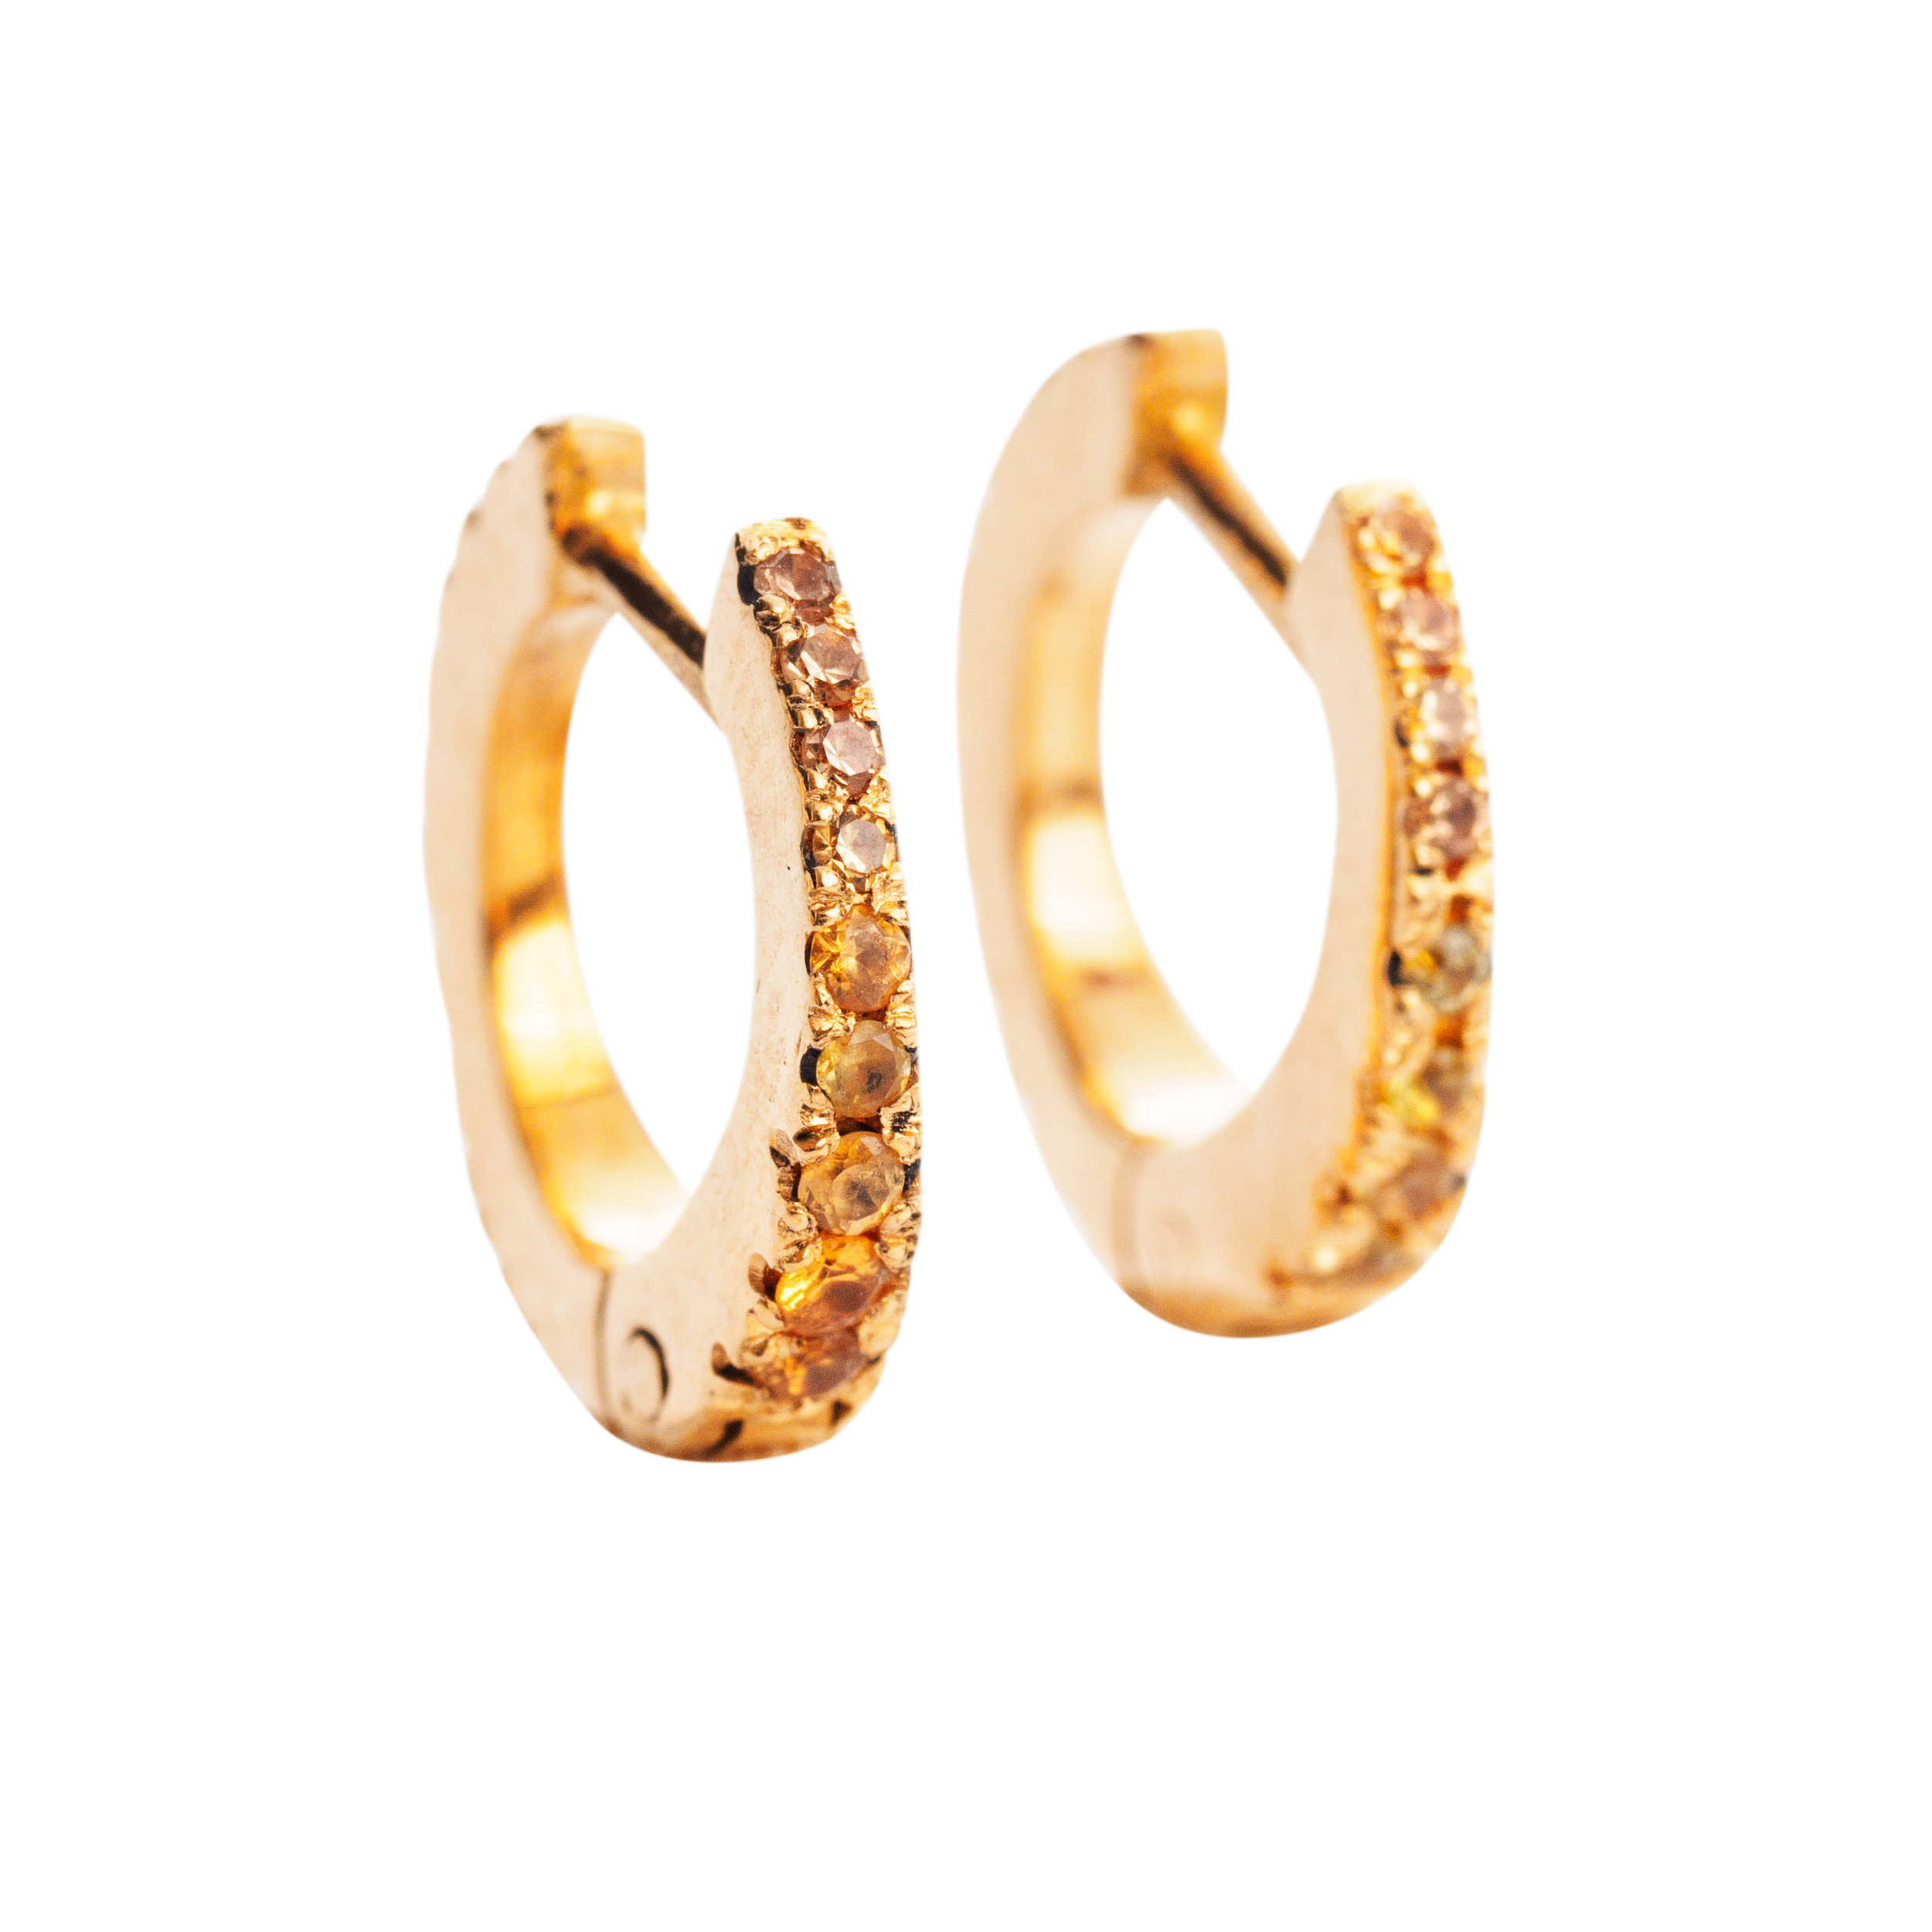 GOLDEN HOOPS WITH YELLOW SAPPHIRES   8.000 NOK   18 kt gold and yellow sapphires